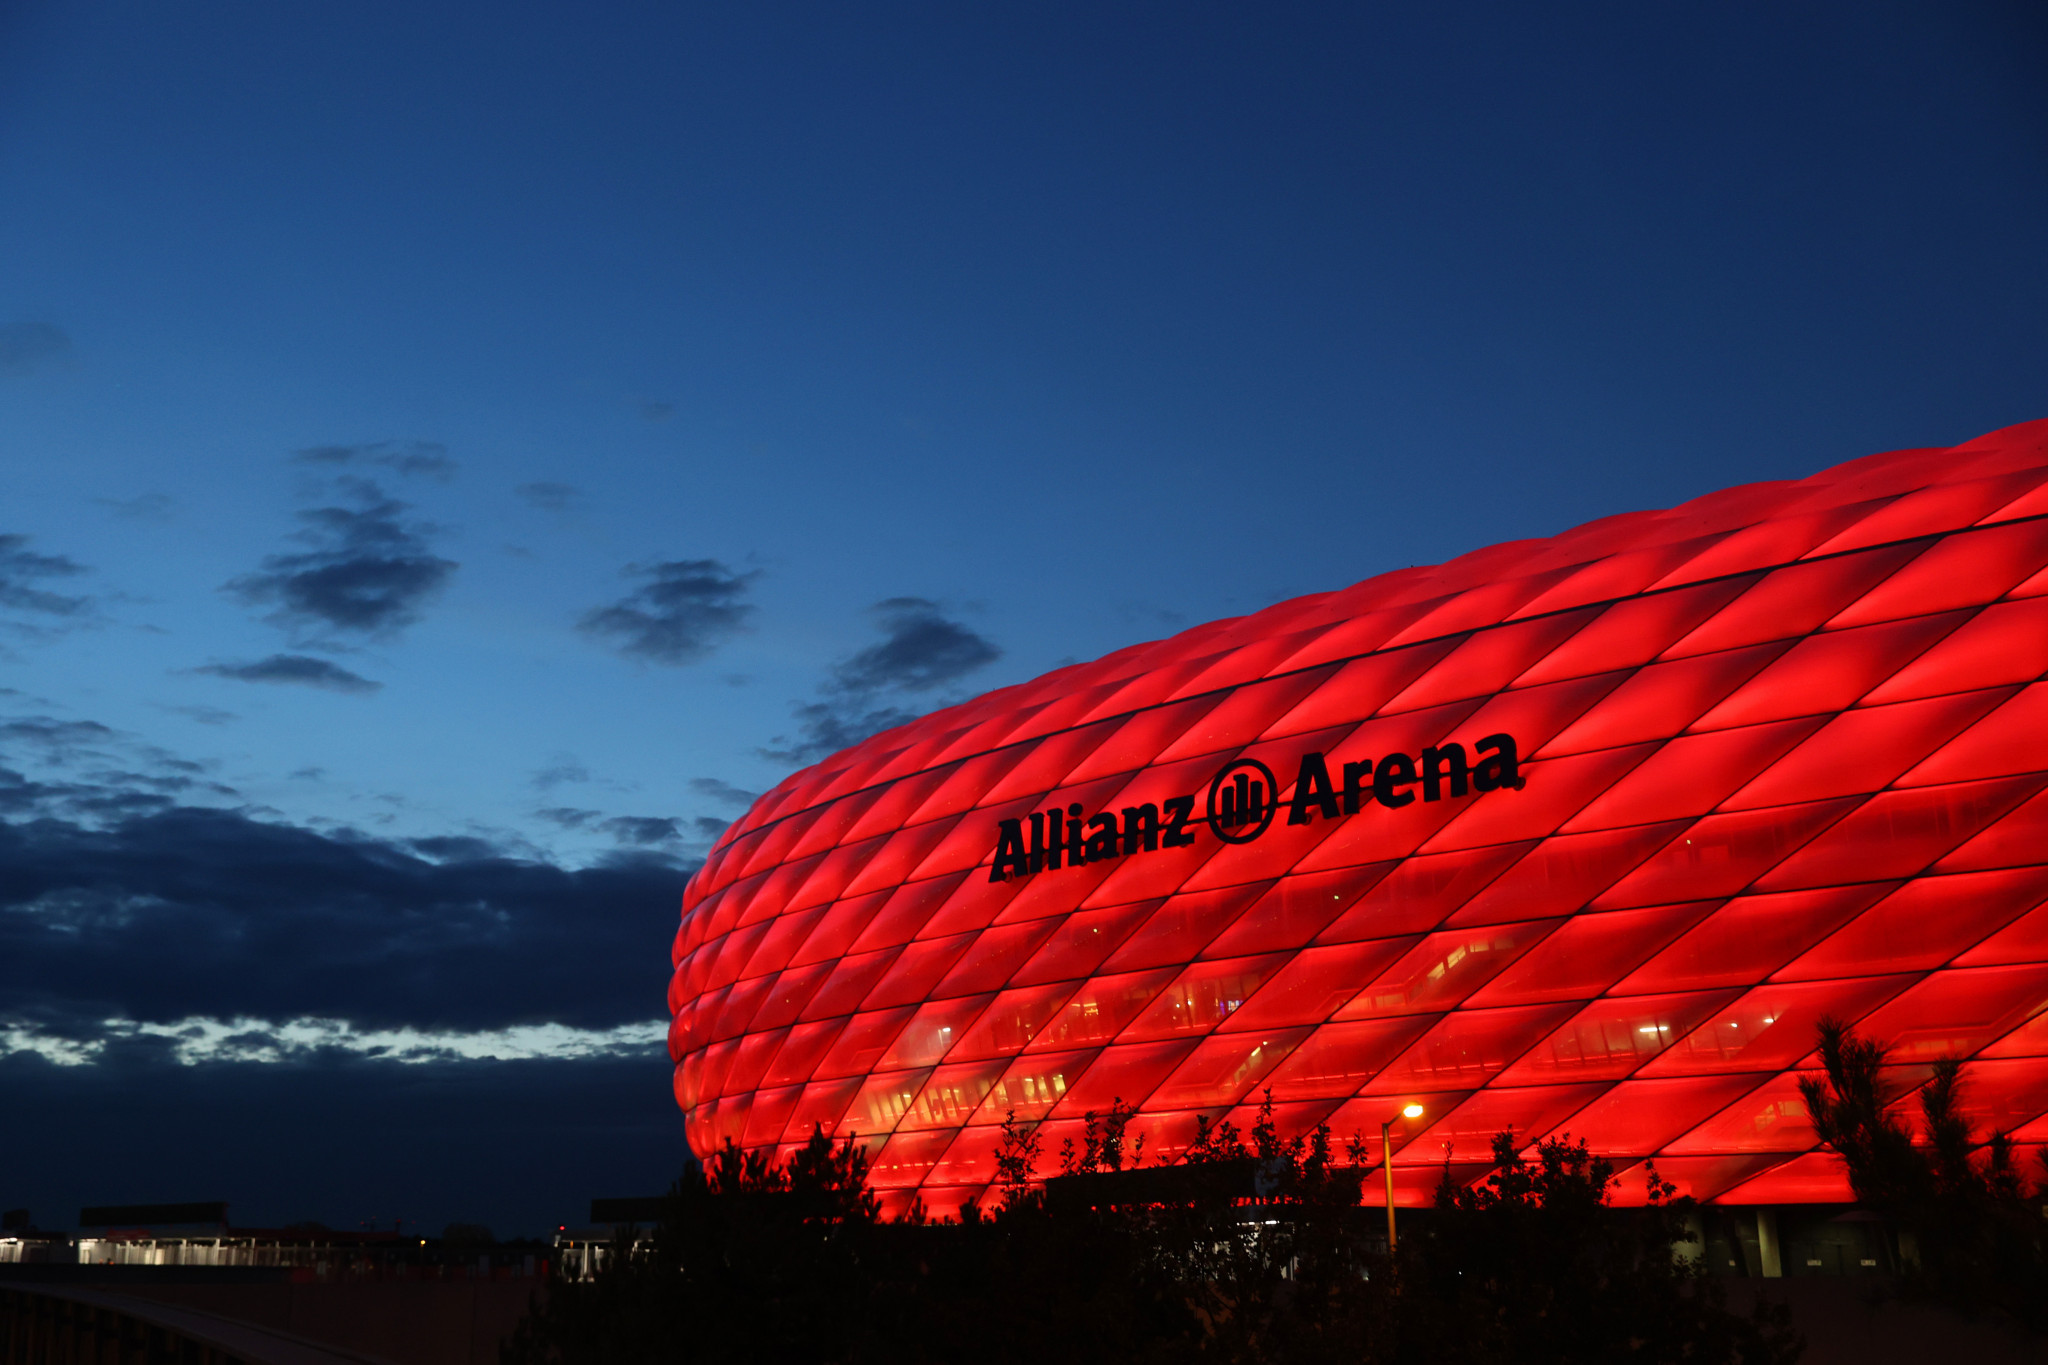 Bilbao and Dublin lose Euro 2020 matches but Munich confirmed as host